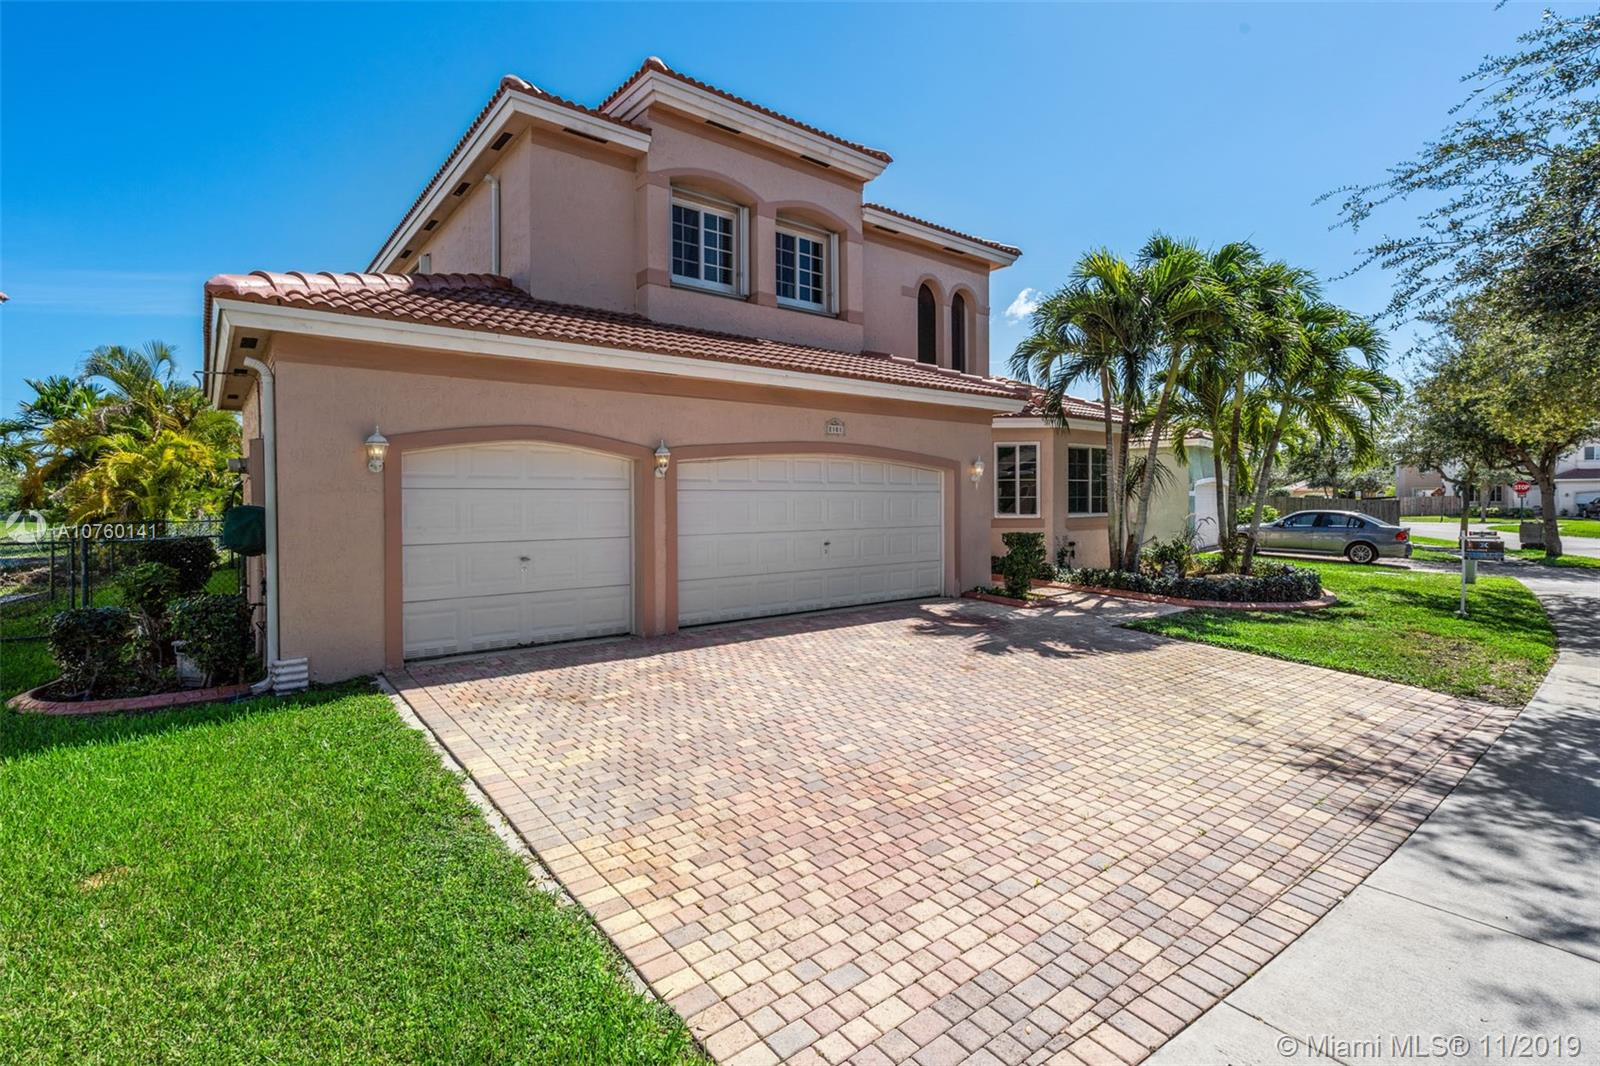 2101 SE 14th Cir, Homestead, FL 33035 - Homestead, FL real estate listing